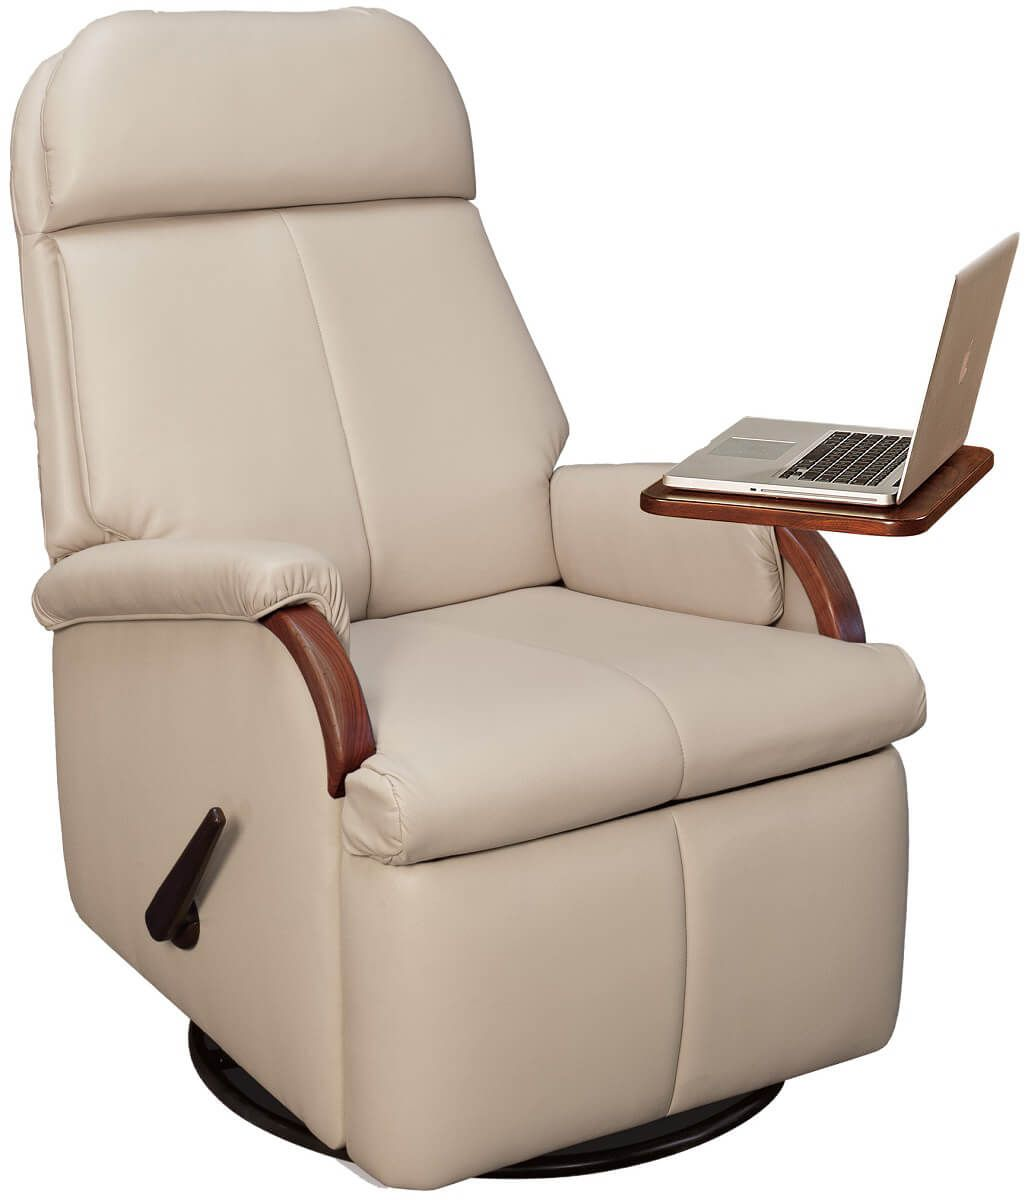 Roycroft Recliner with optional computer table